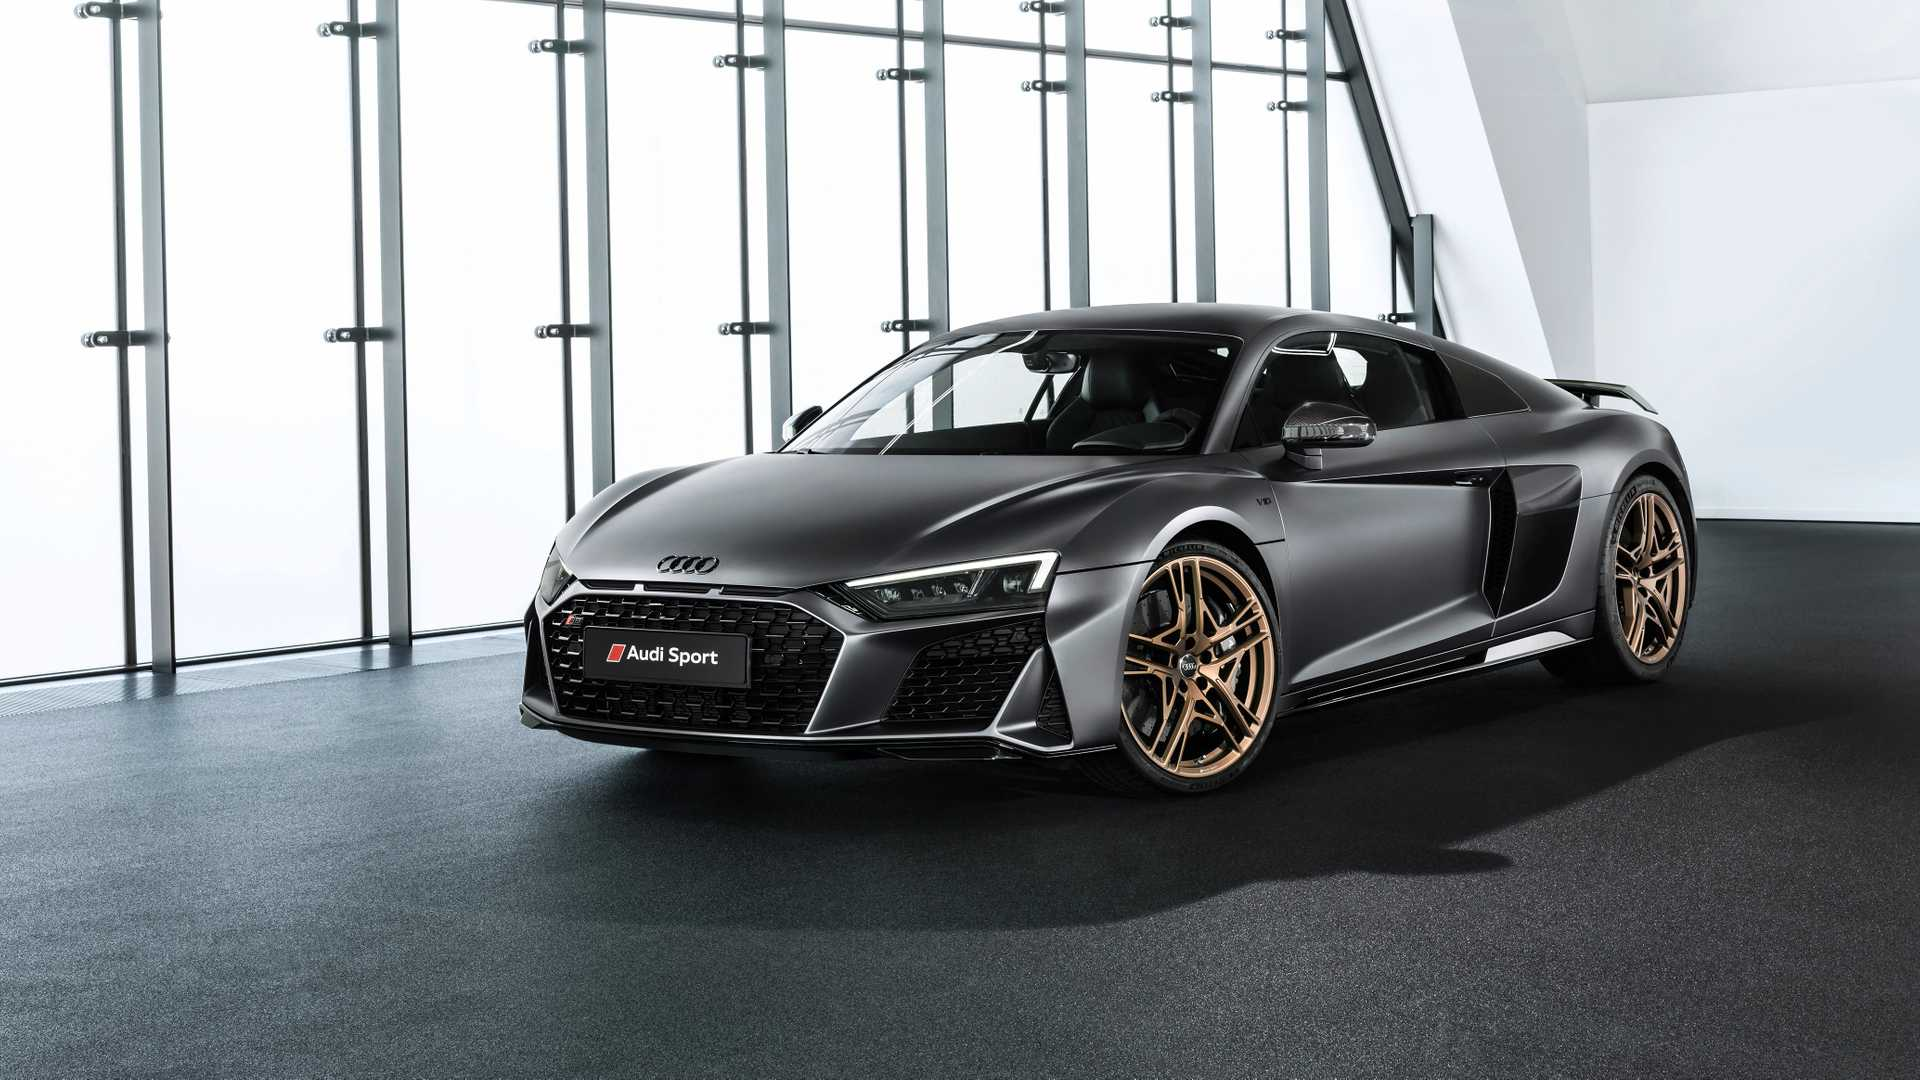 76 Gallery of Pictures Of 2020 Audi R8 Images with Pictures Of 2020 Audi R8